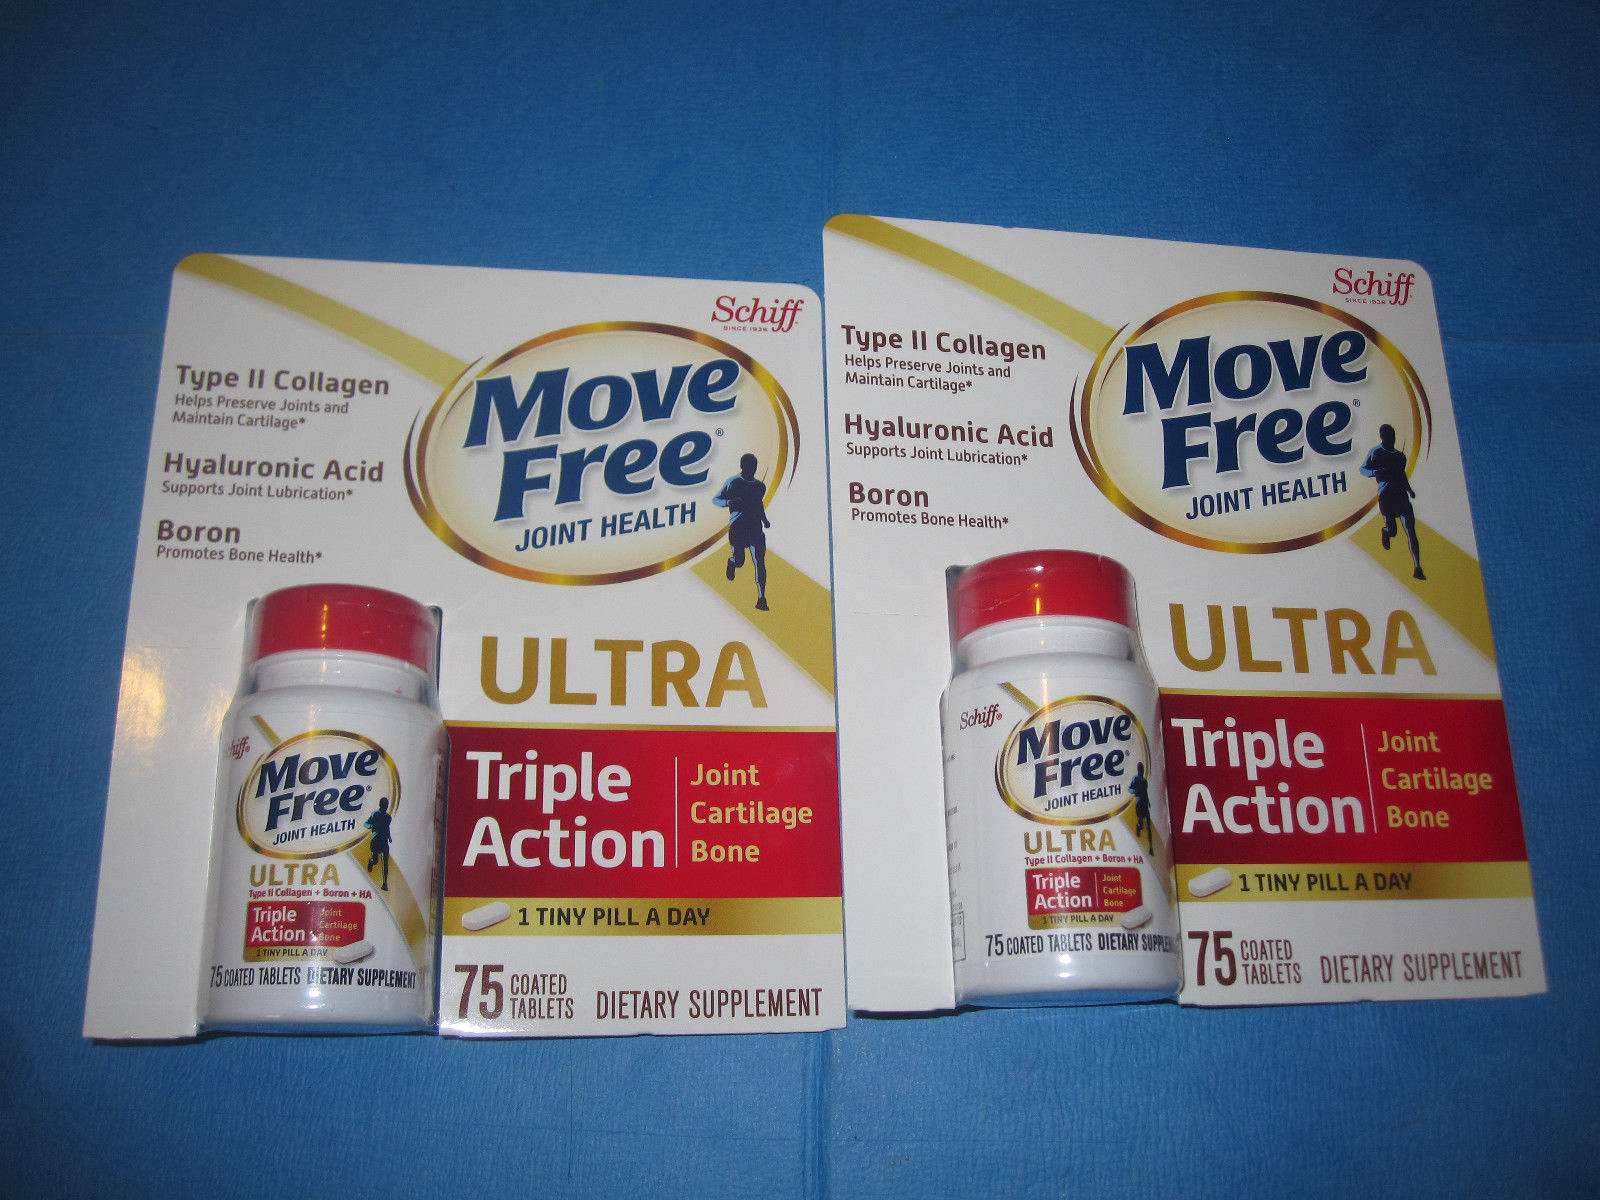 Schiff Move Free Ultra 2 Bottles 75 Tablets Supports Joints Cartilage Bone